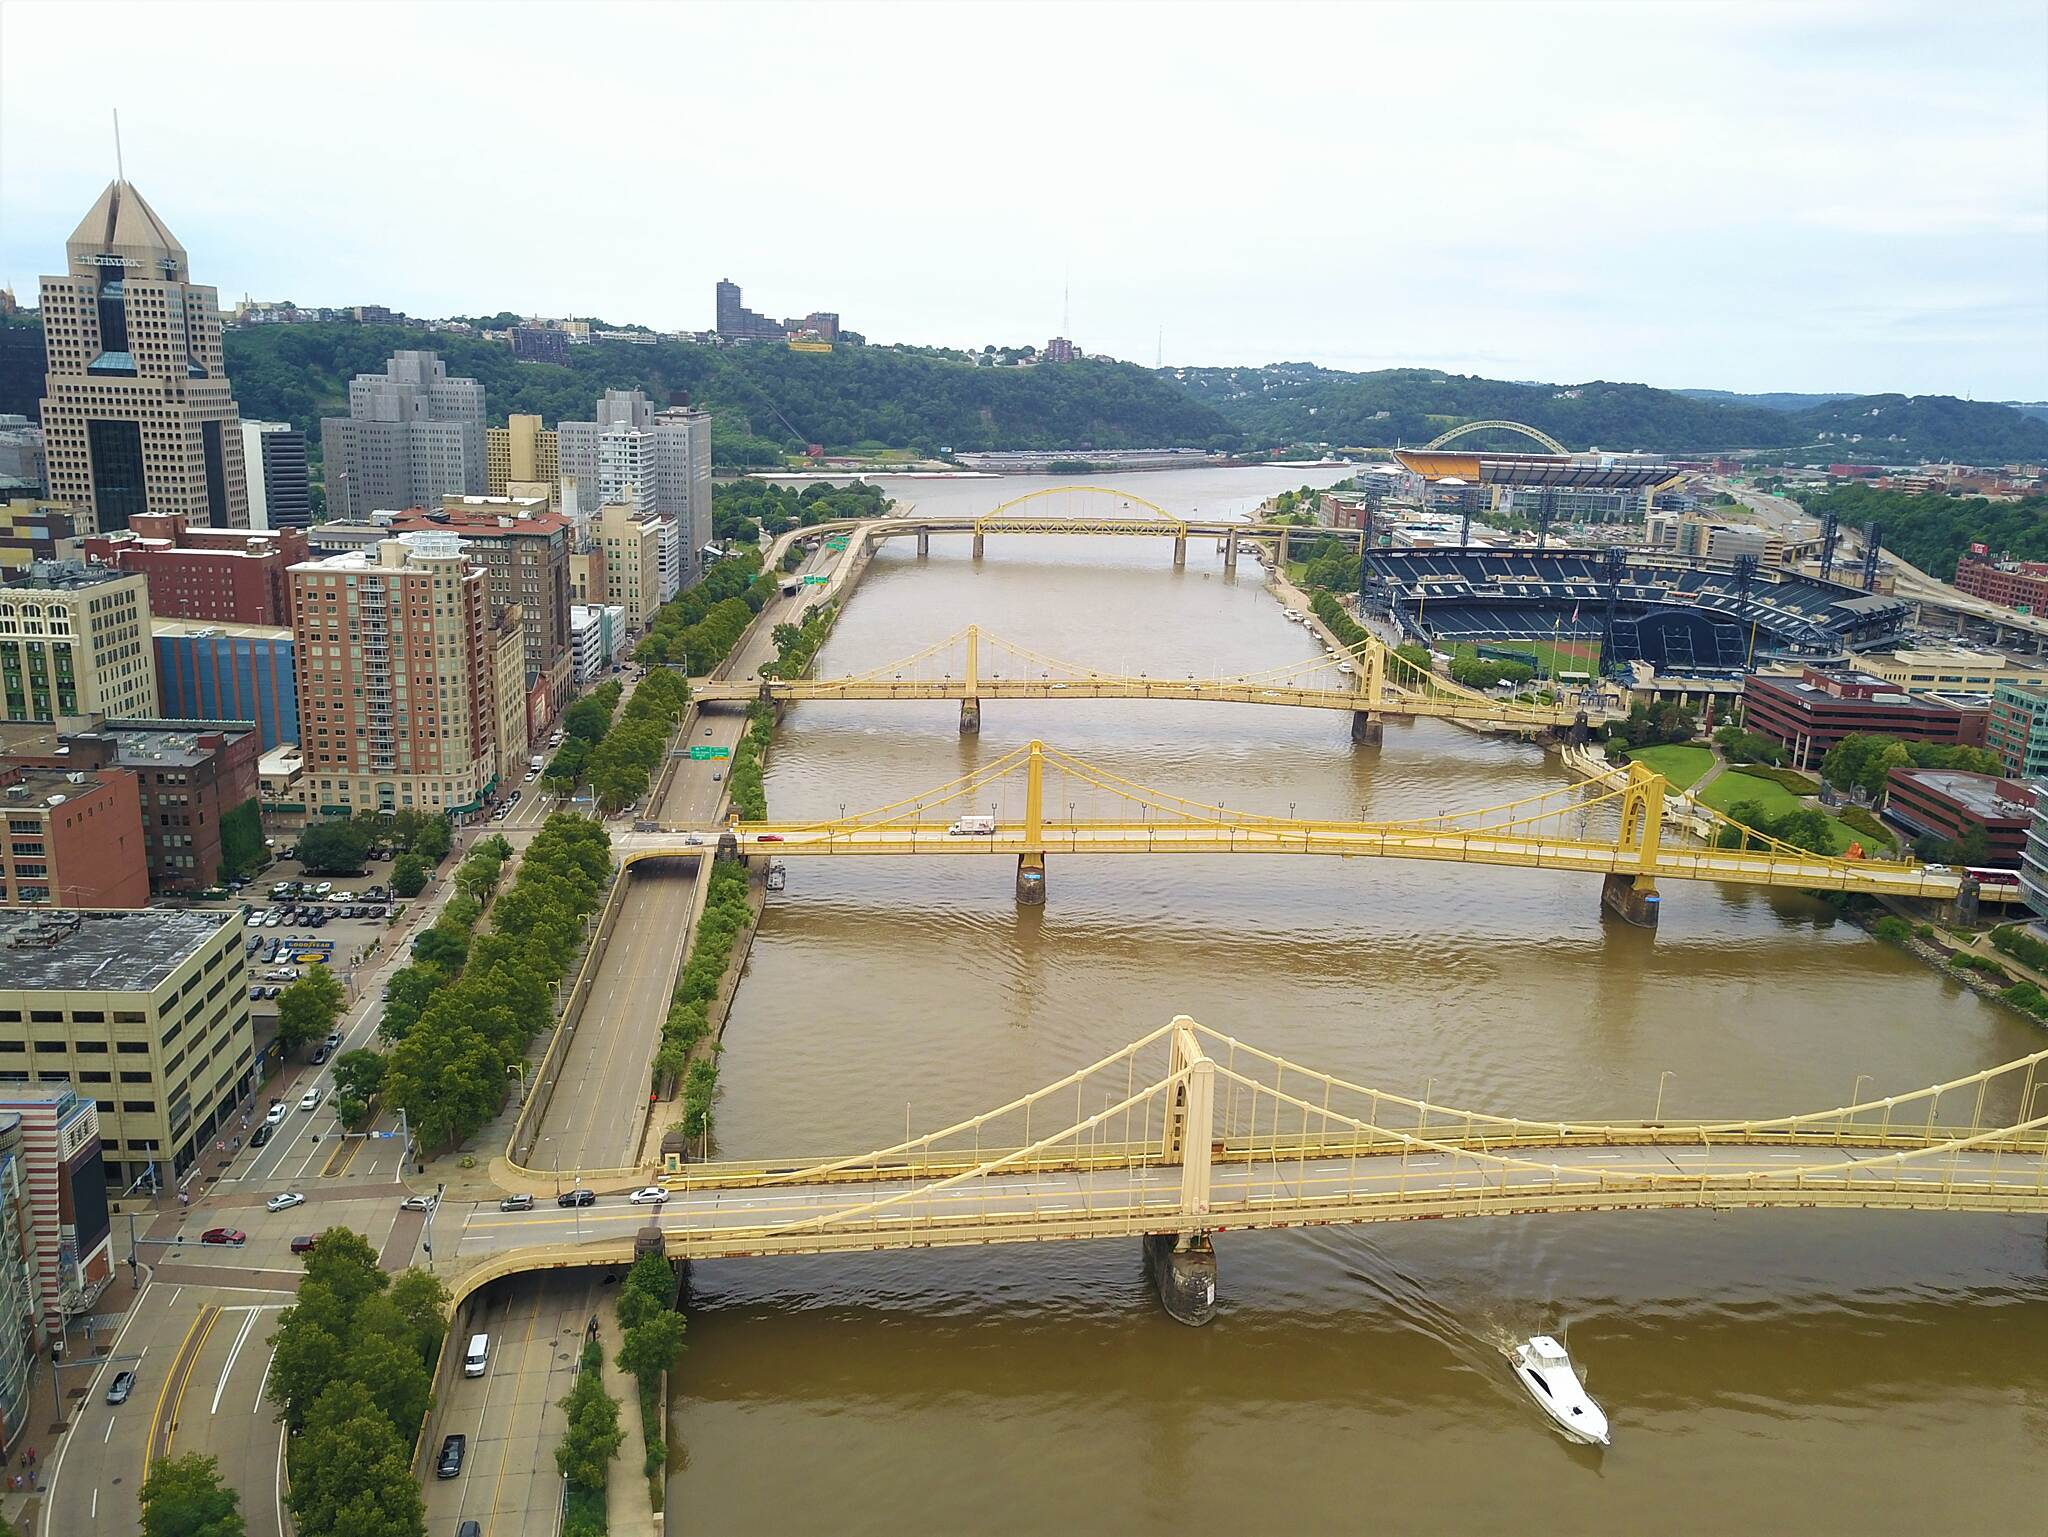 Three Rivers Heritage Trail Waterfront Aerial Aerial view of the trail along the Allegheny River waterfront in downtown Pittsburgh.